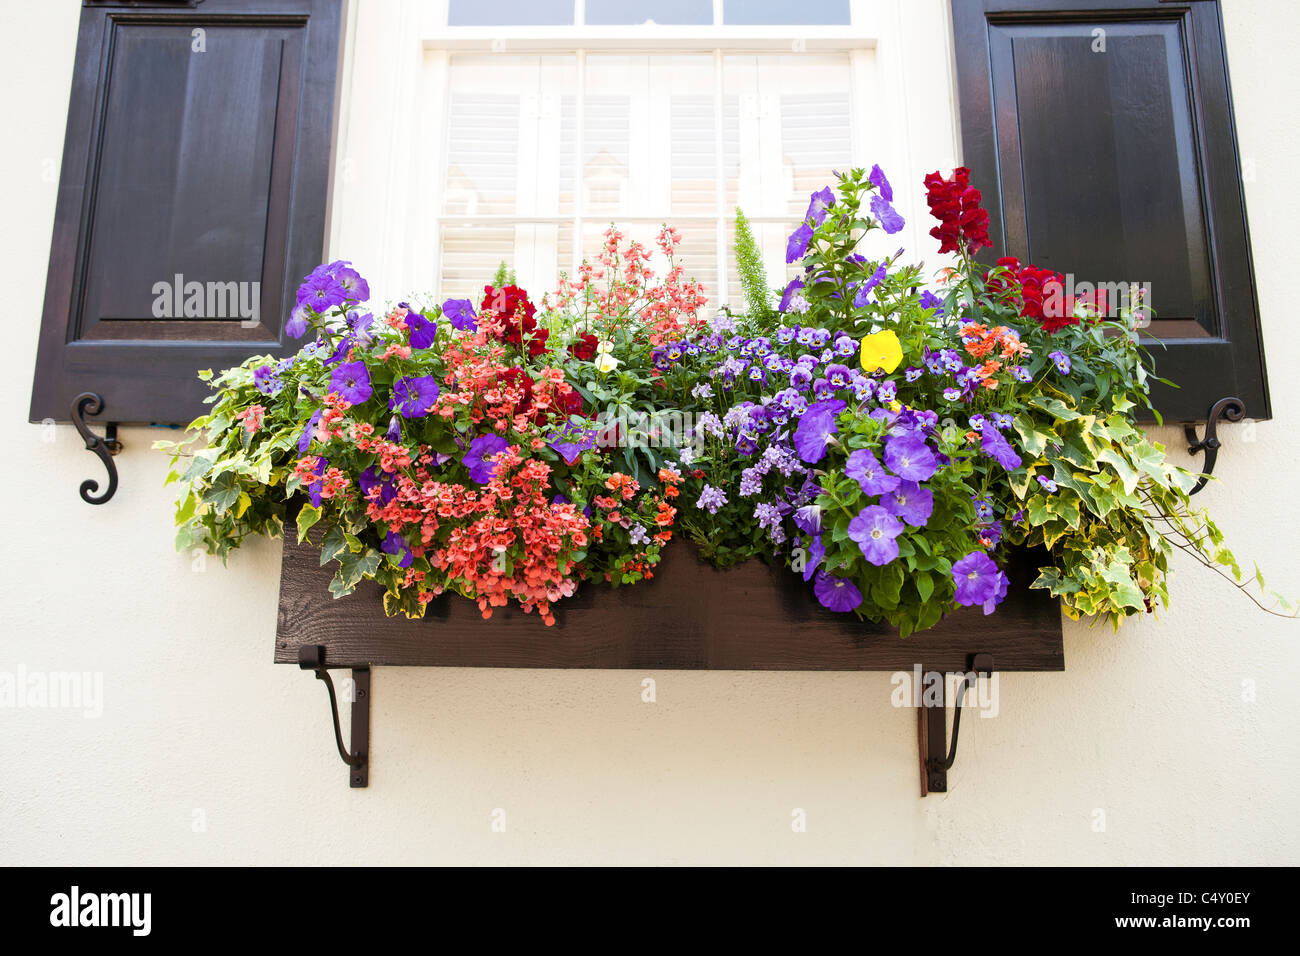 Window Box with Flowers - Stock Image